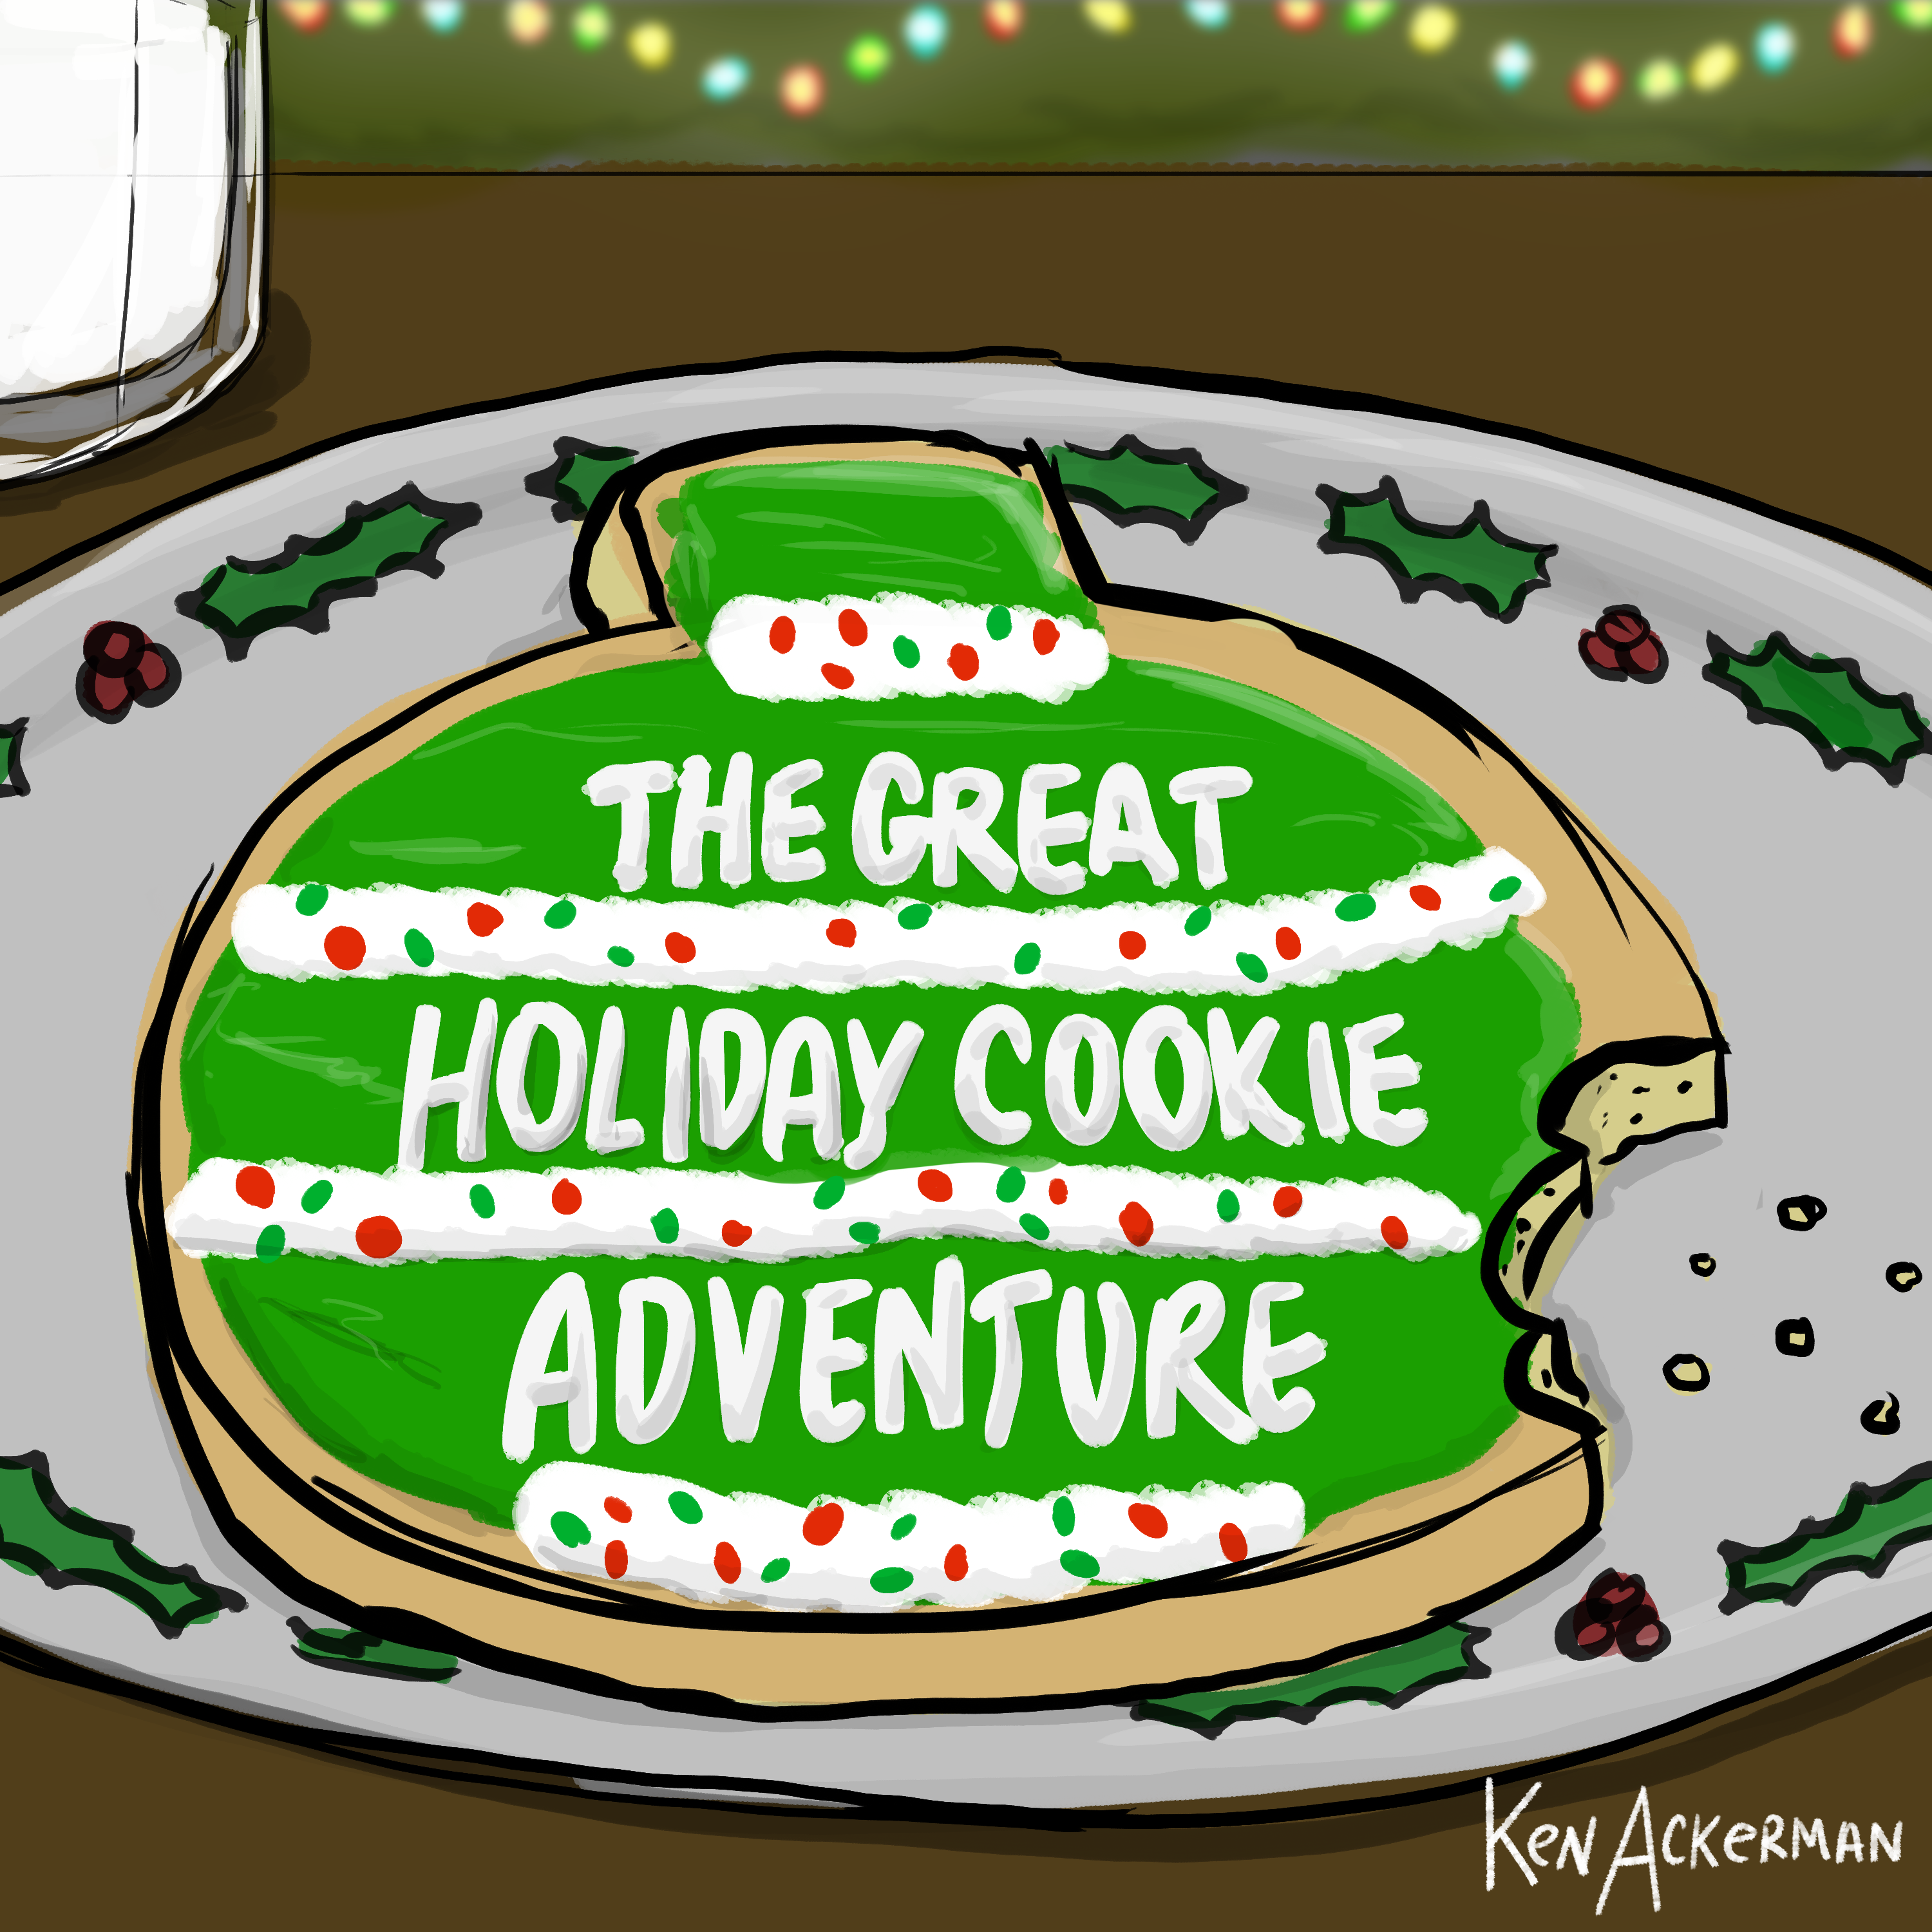 832 - Ingredients for a Festival of Lights | Great Holiday Cookie Adventure Ep2